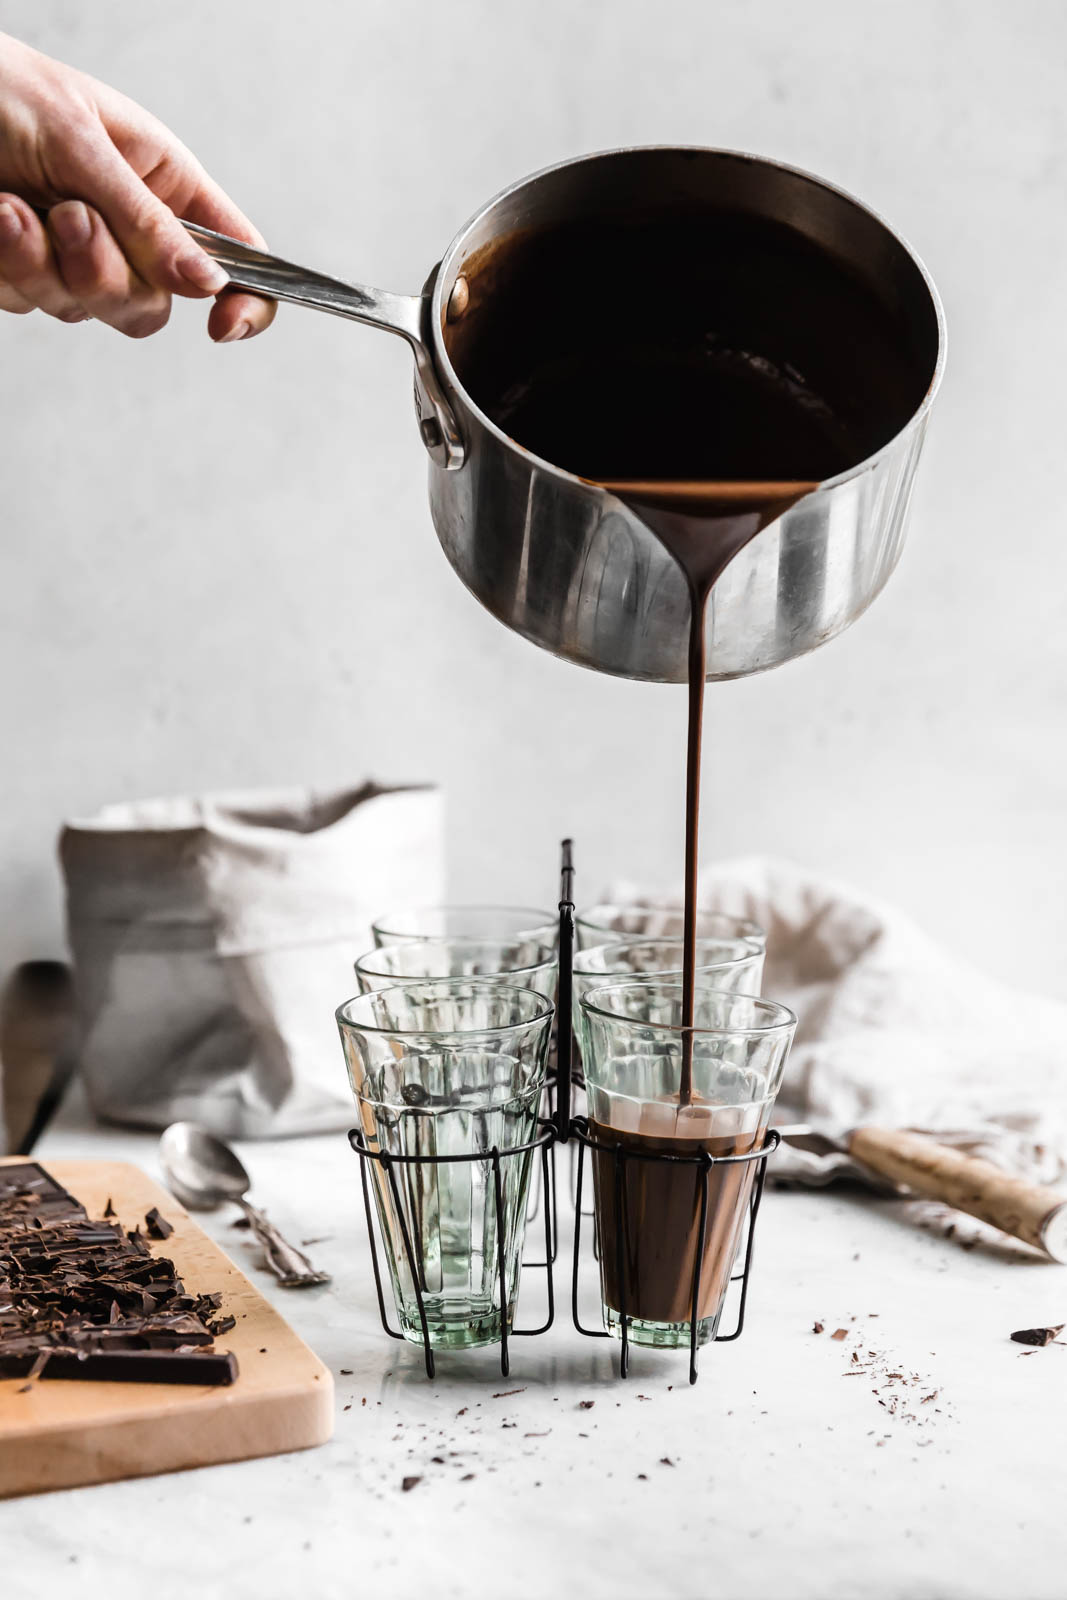 Thick AF Tahini Hot Chocolate made with hunks of bittersweet chocolate and spoonfuls of tahini. Guys, this stuff is pure liquid gold.